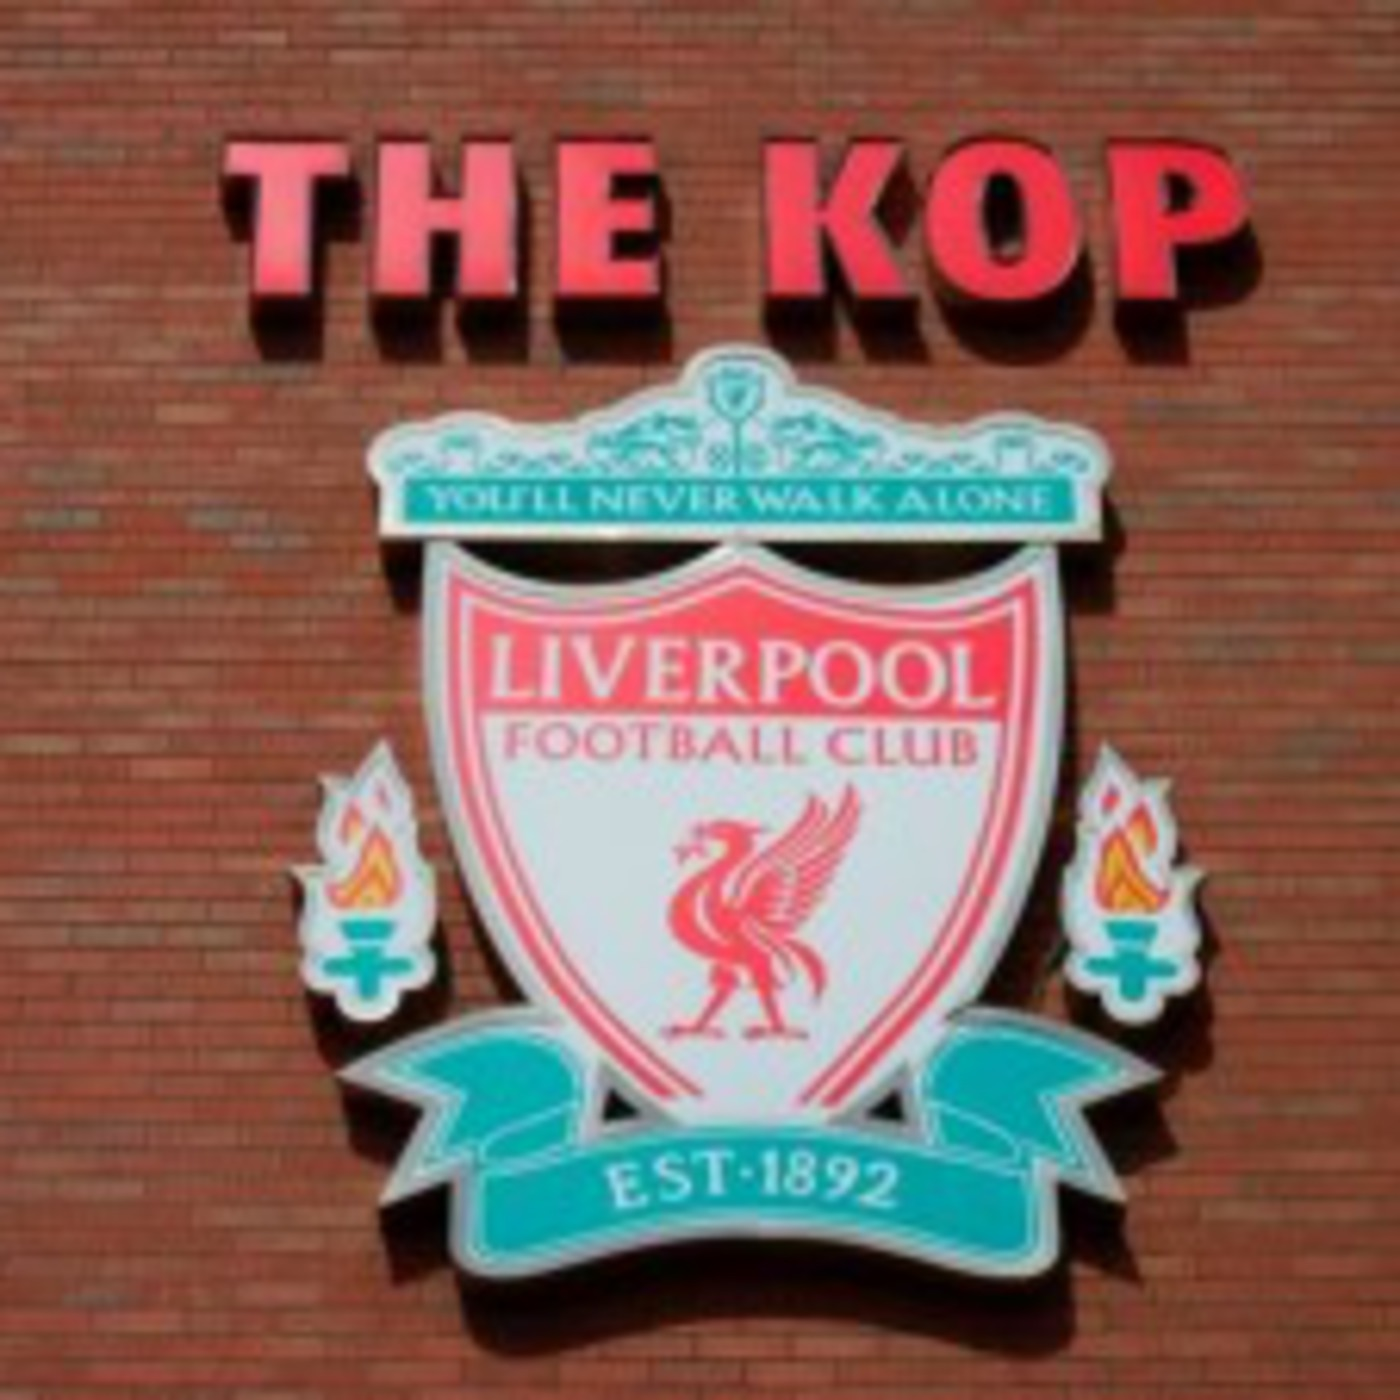 The Kop Weekly